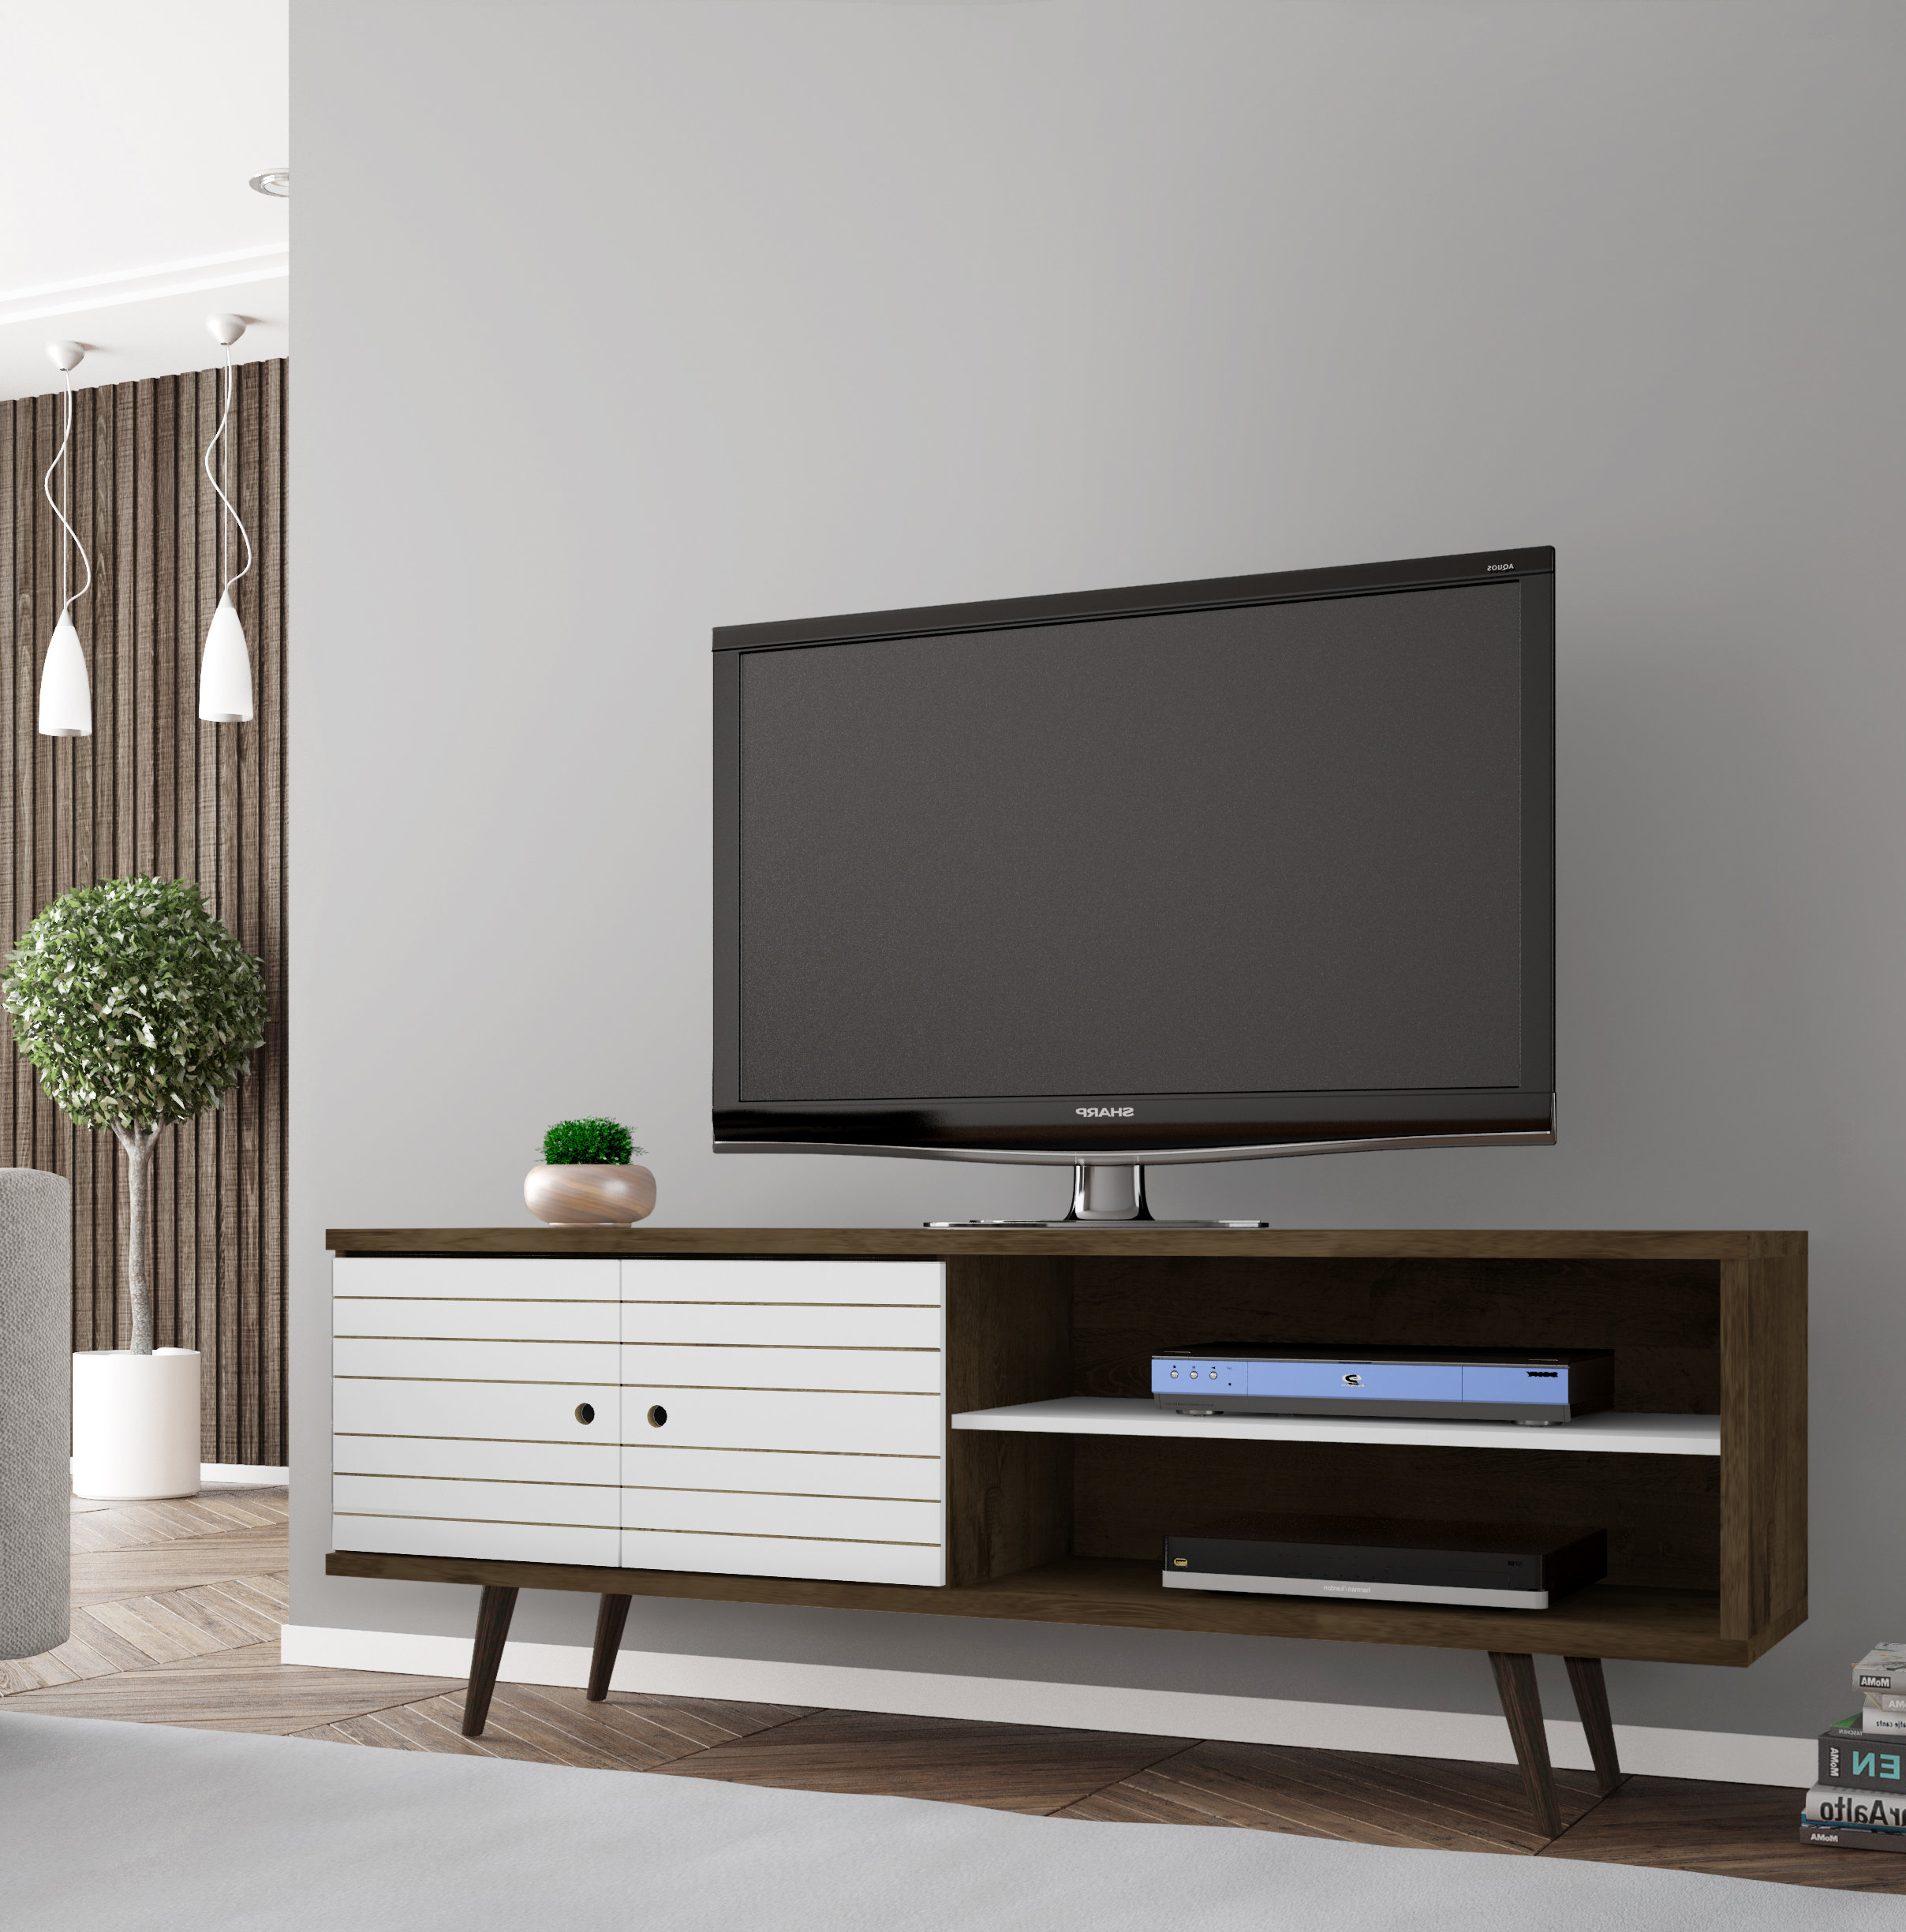 Wayfair With Regard To Favorite Combs 63 Inch Tv Stands (View 19 of 20)